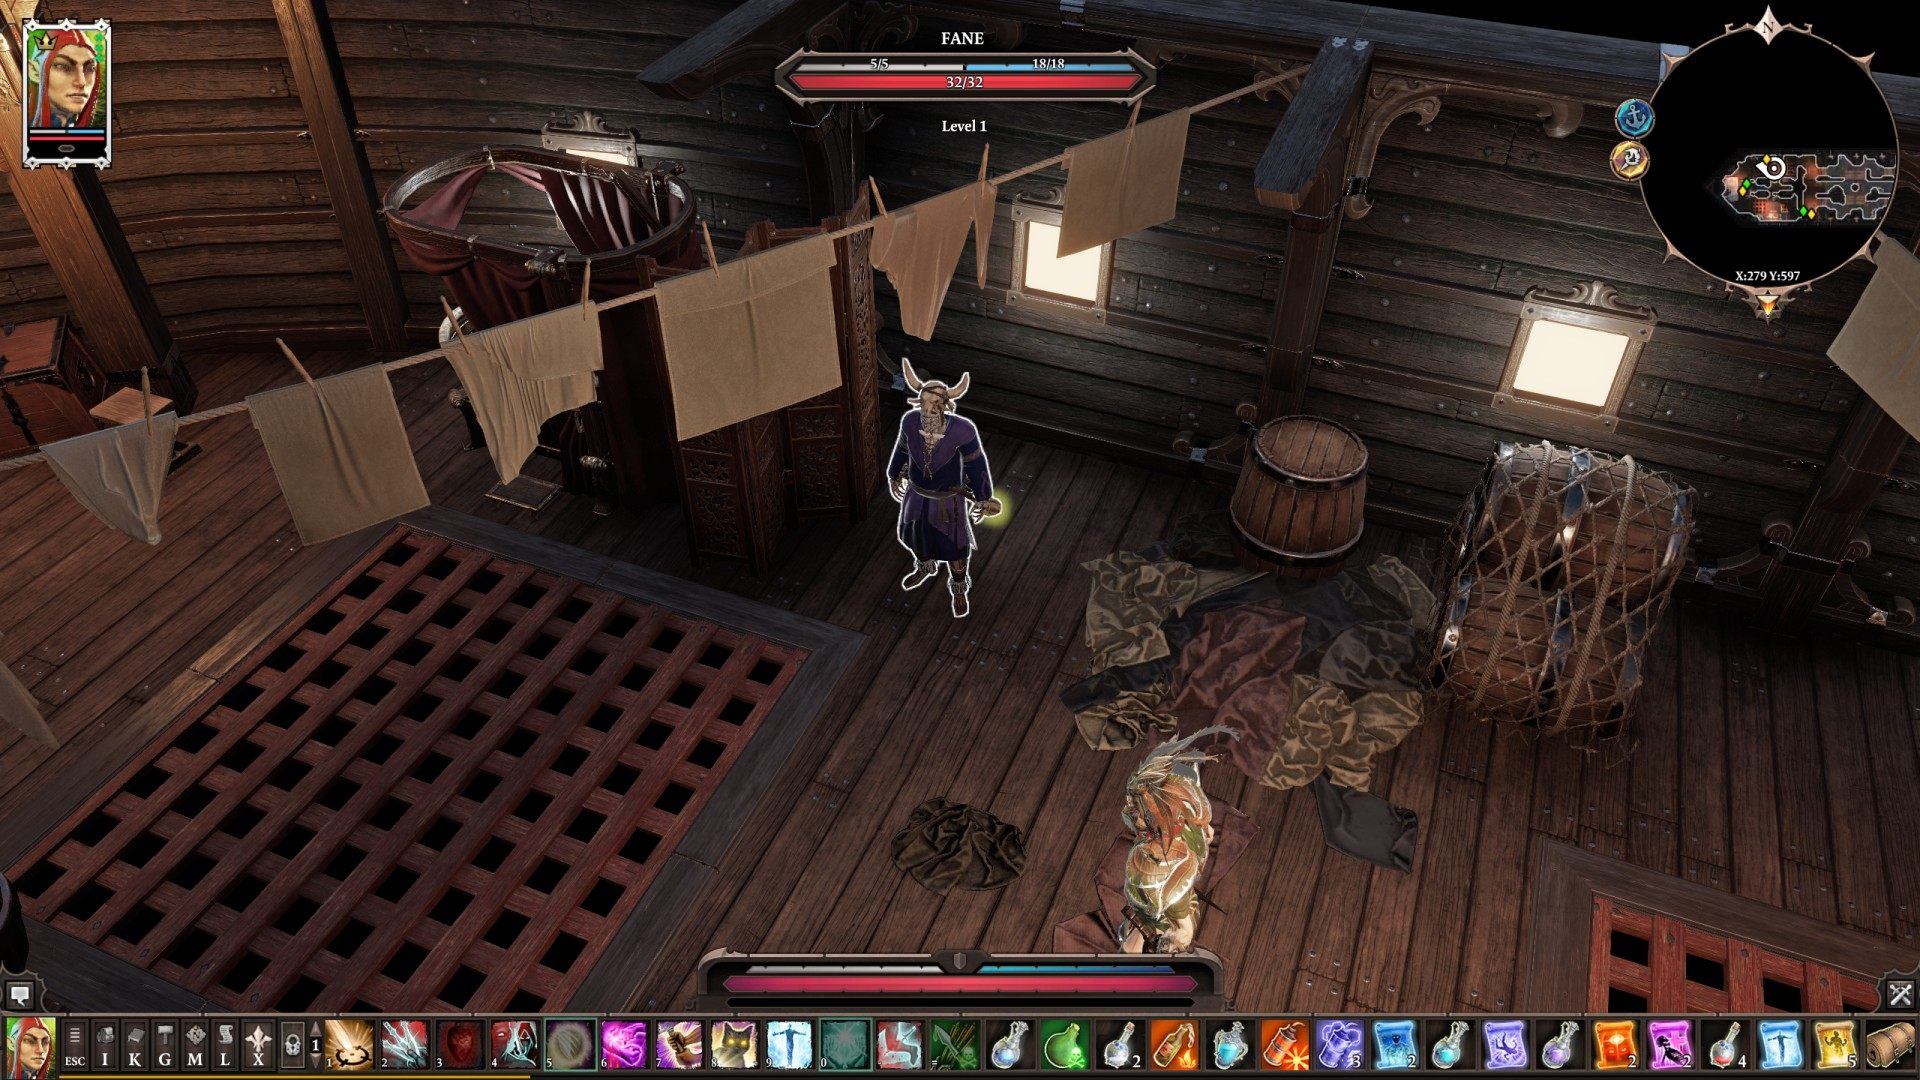 NPCs, Lady Vengeance, Divinity: Original Sin 2 Points of interest